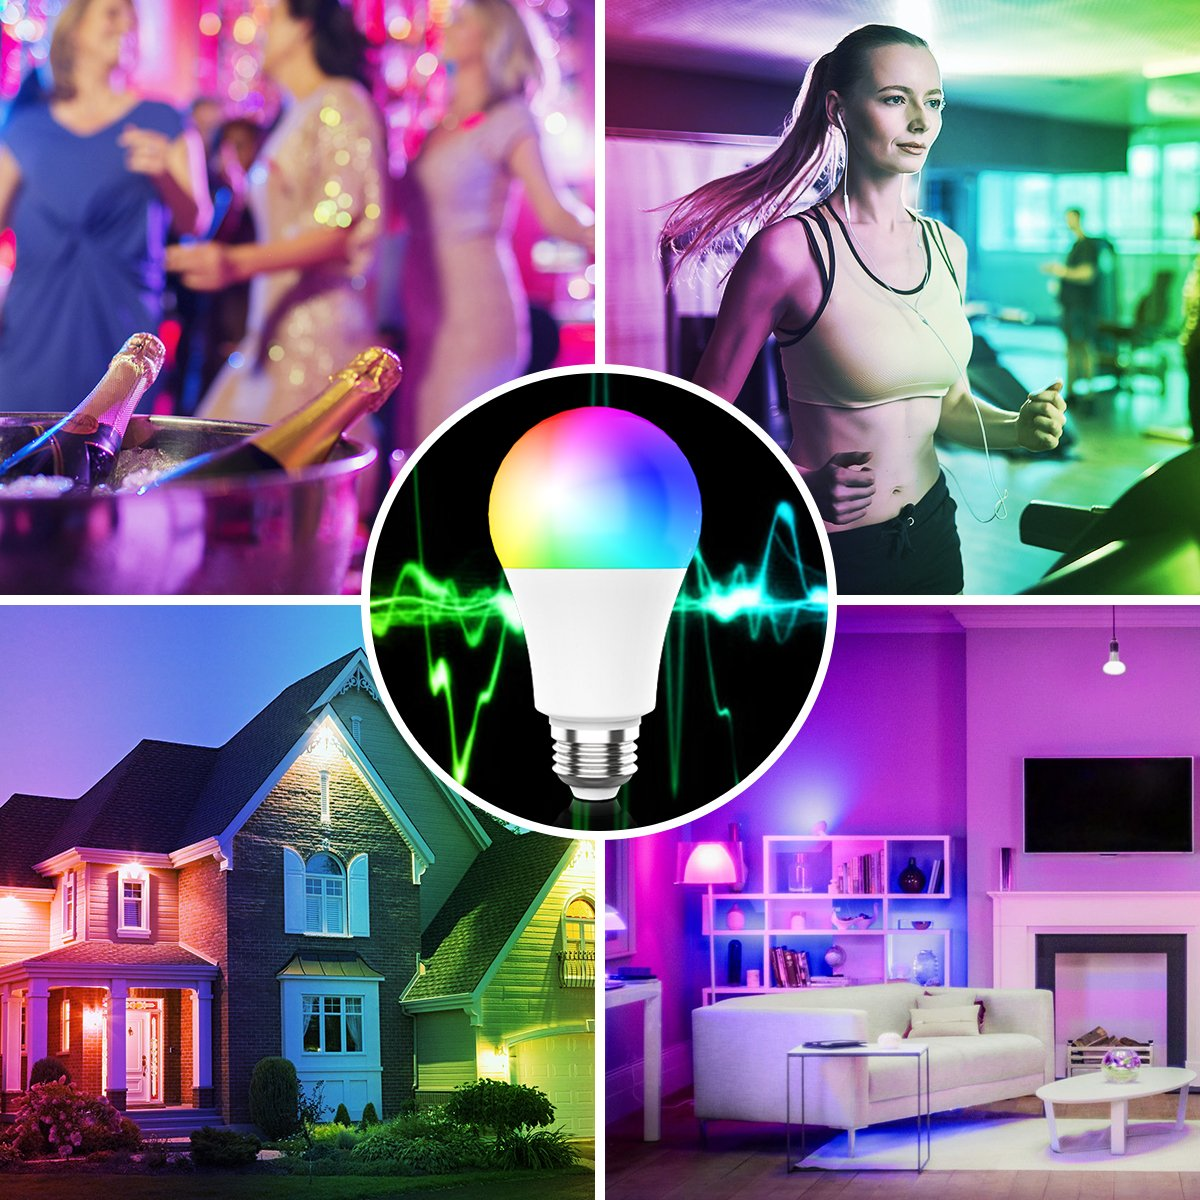 Novostella Smart Light Bulb, RGBCW Wi-Fi LED Bulb A19[7W 600LM] Dimmable Multicolored Lights, No Hub Required, Works with Amazon Alexa and Google Home, 60W Equivalent (3 Pack) by NOVOSTELLA (Image #7)